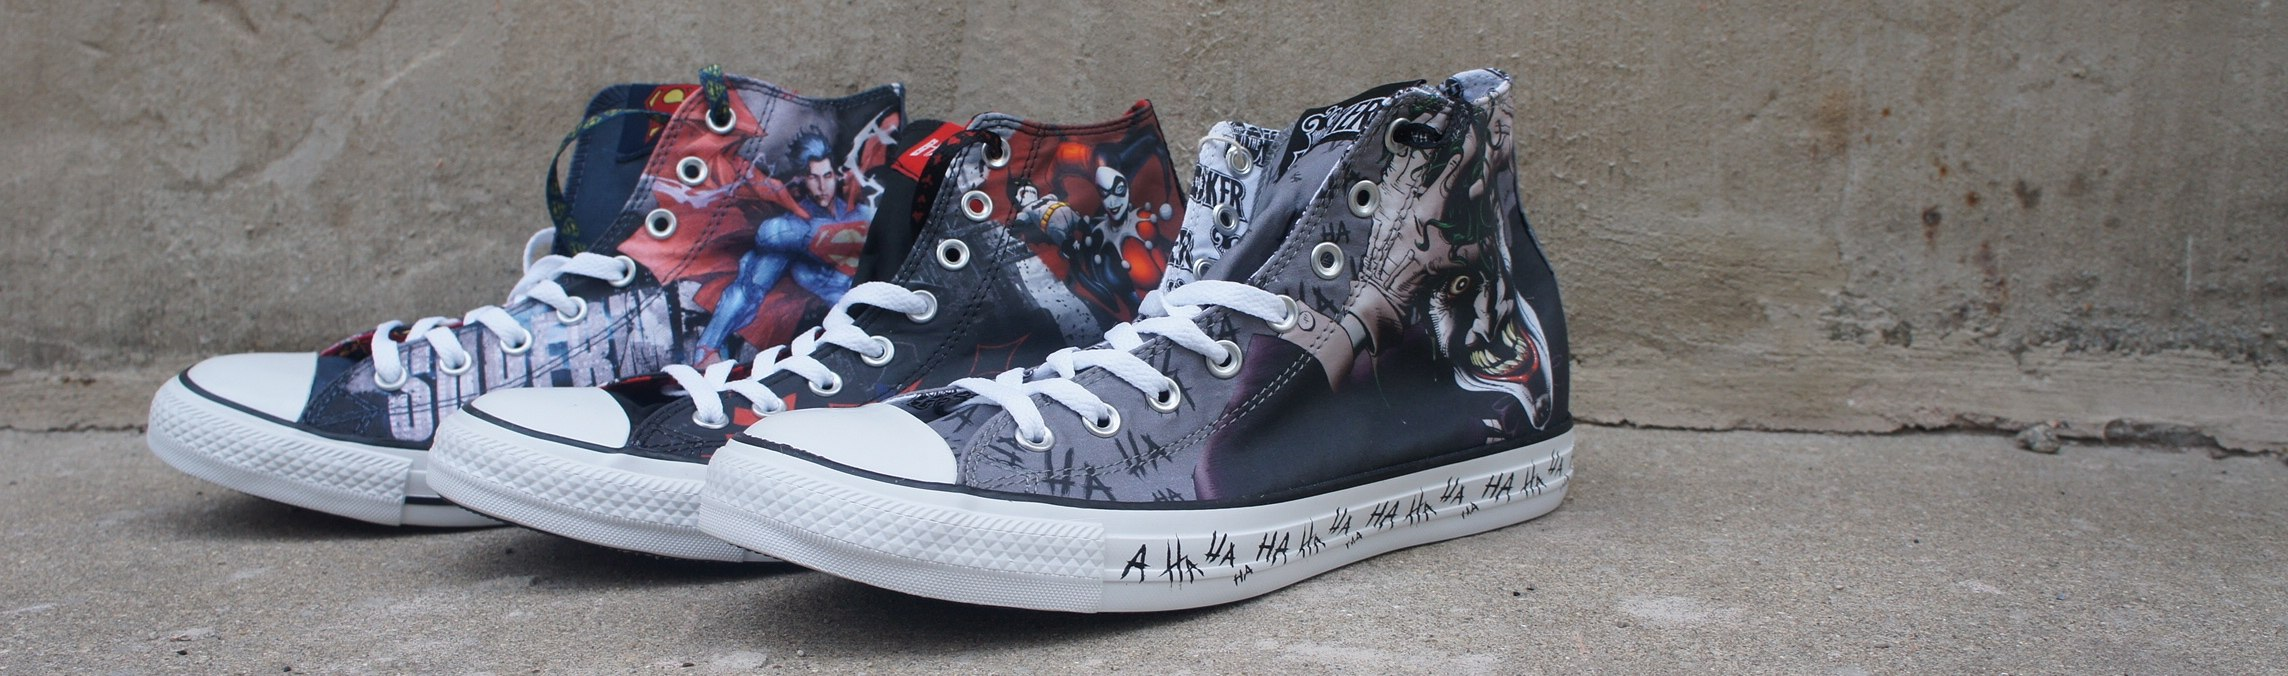 buy online d9282 f99ee converse dc comics collection